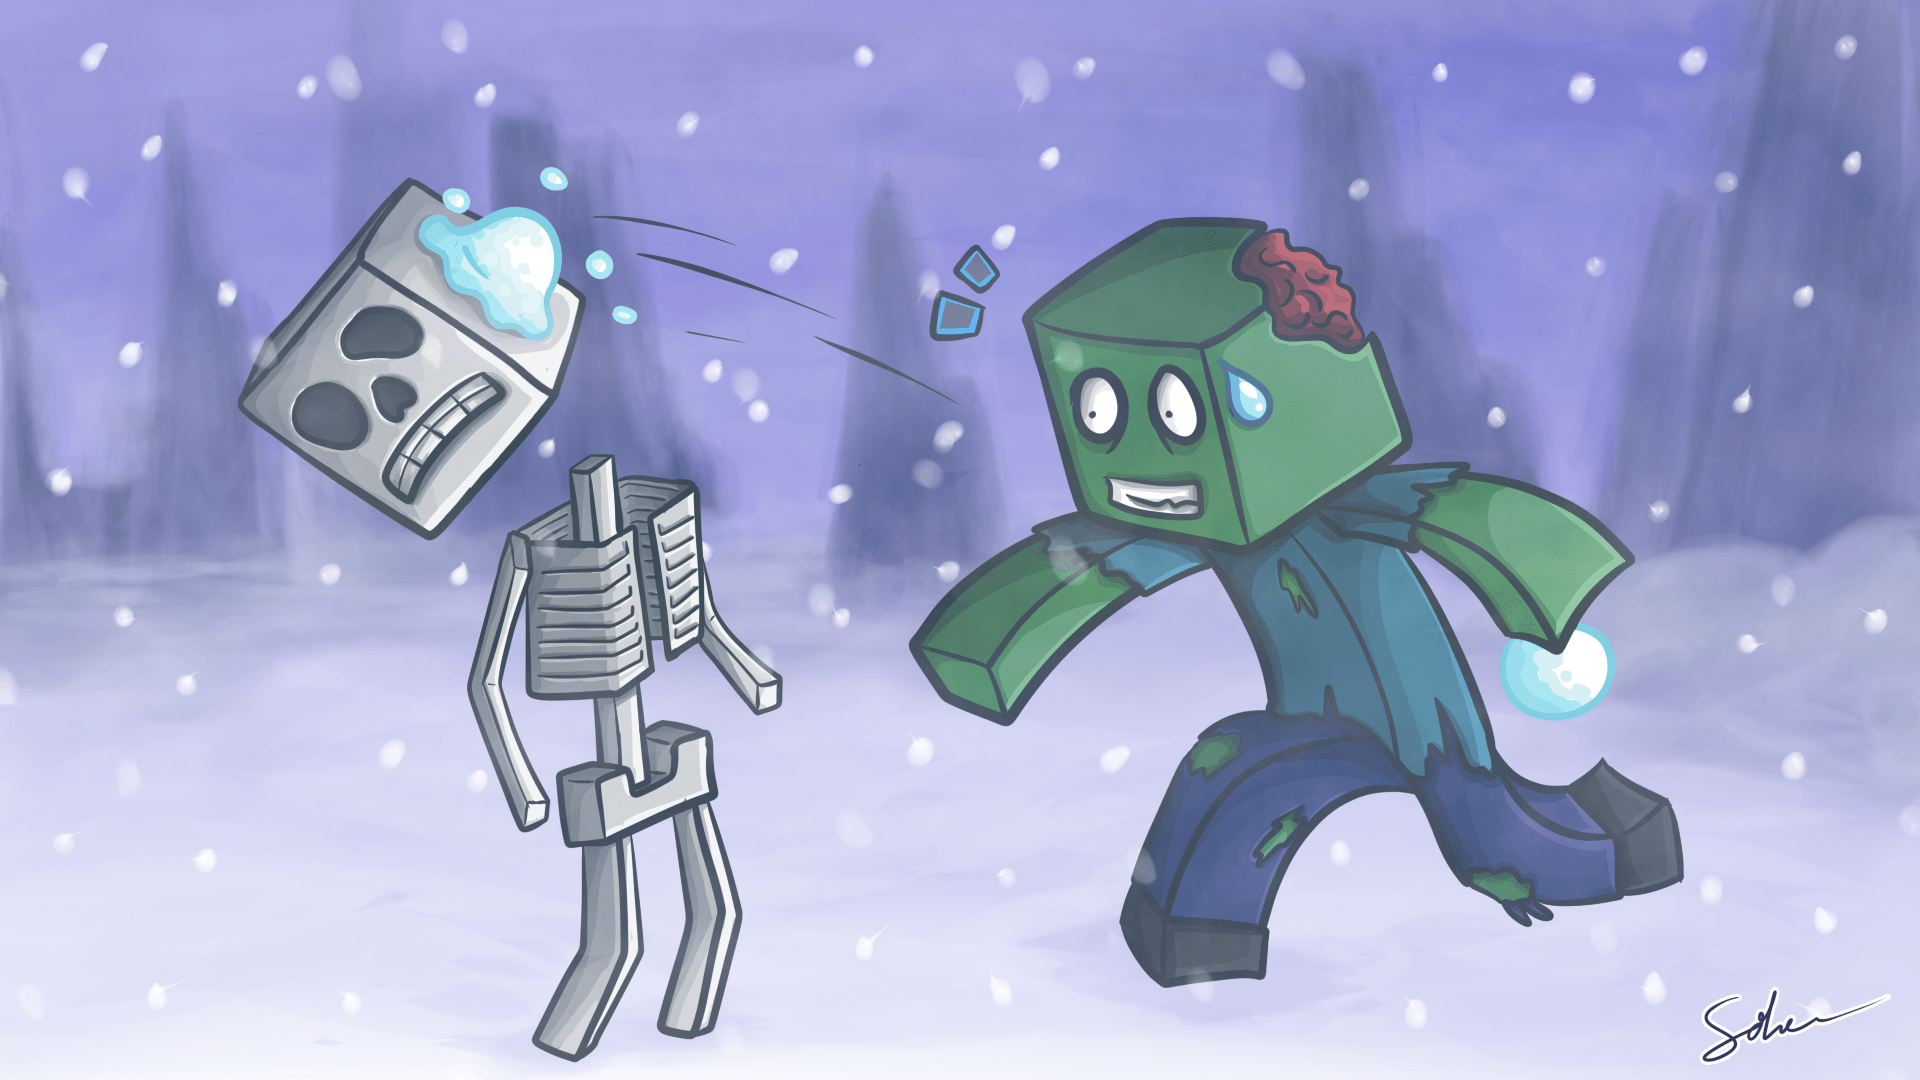 minecraft_snowball_fight_by_goldsolace-d5oe240